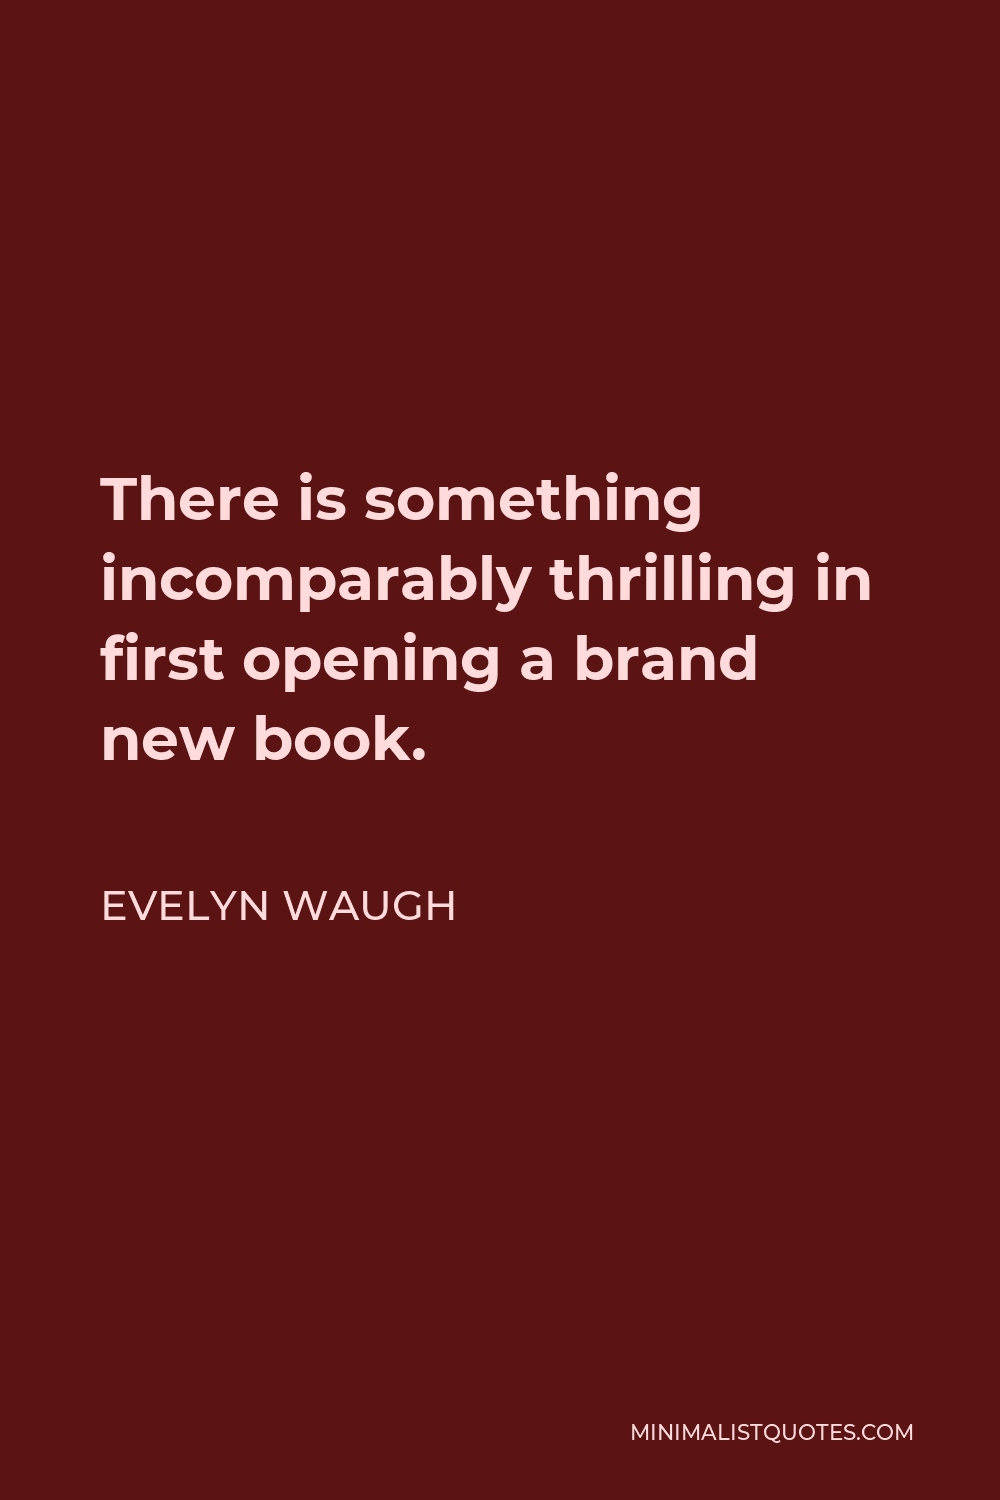 Evelyn Waugh Quote - There is something incomparably thrilling in first opening a brand new book.